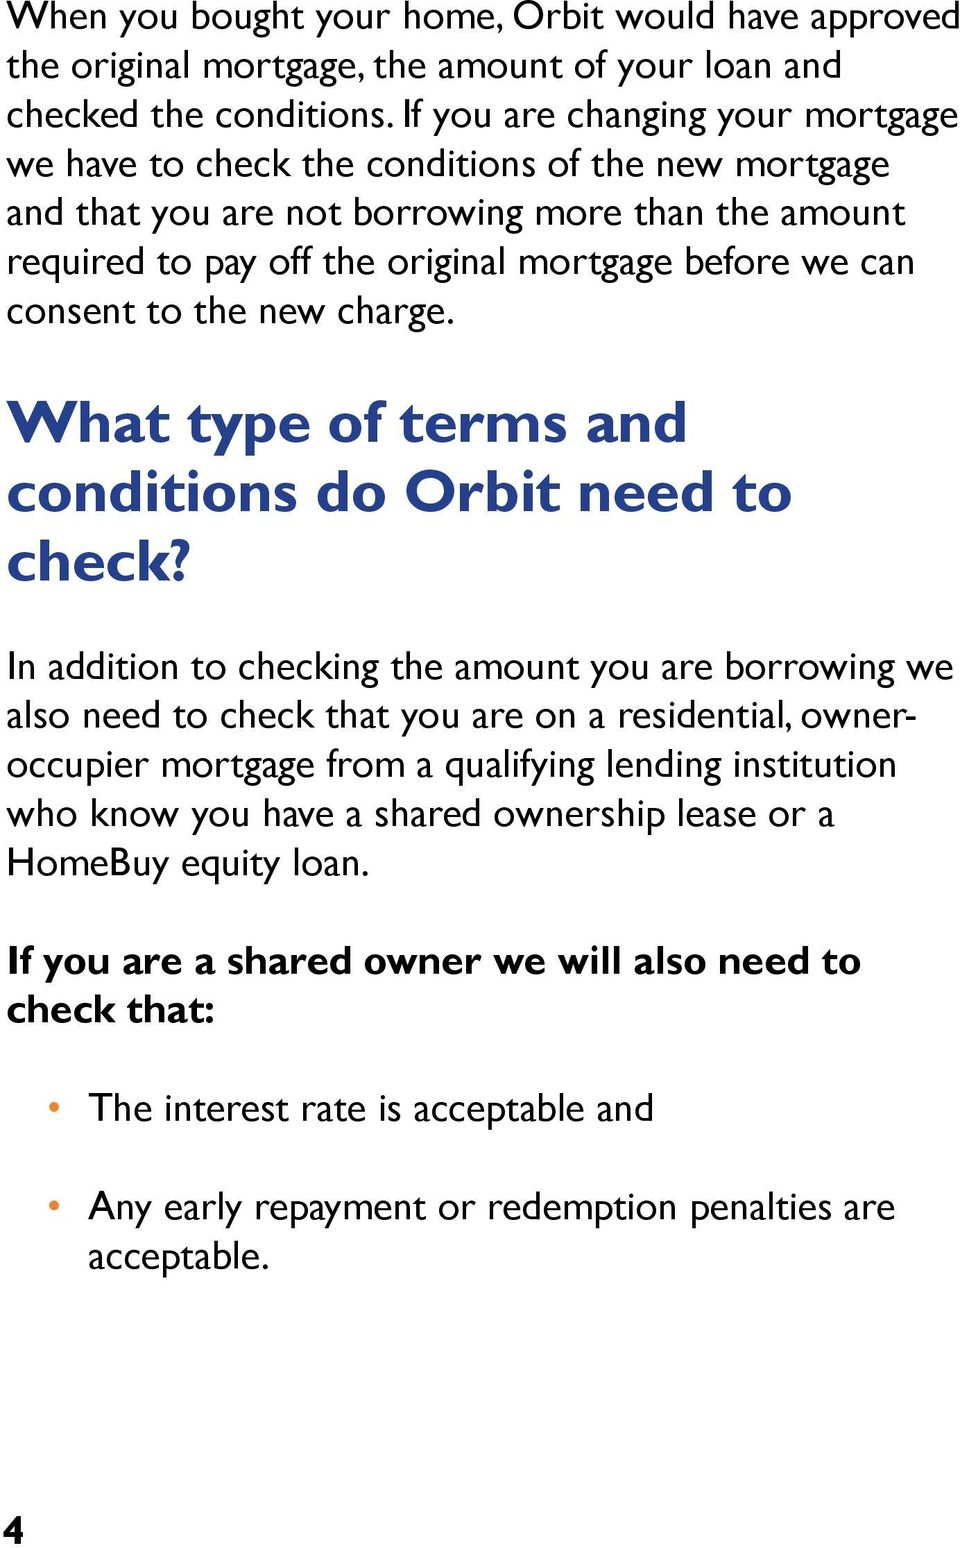 consent to the new charge. What type of terms and conditions do Orbit need to check?